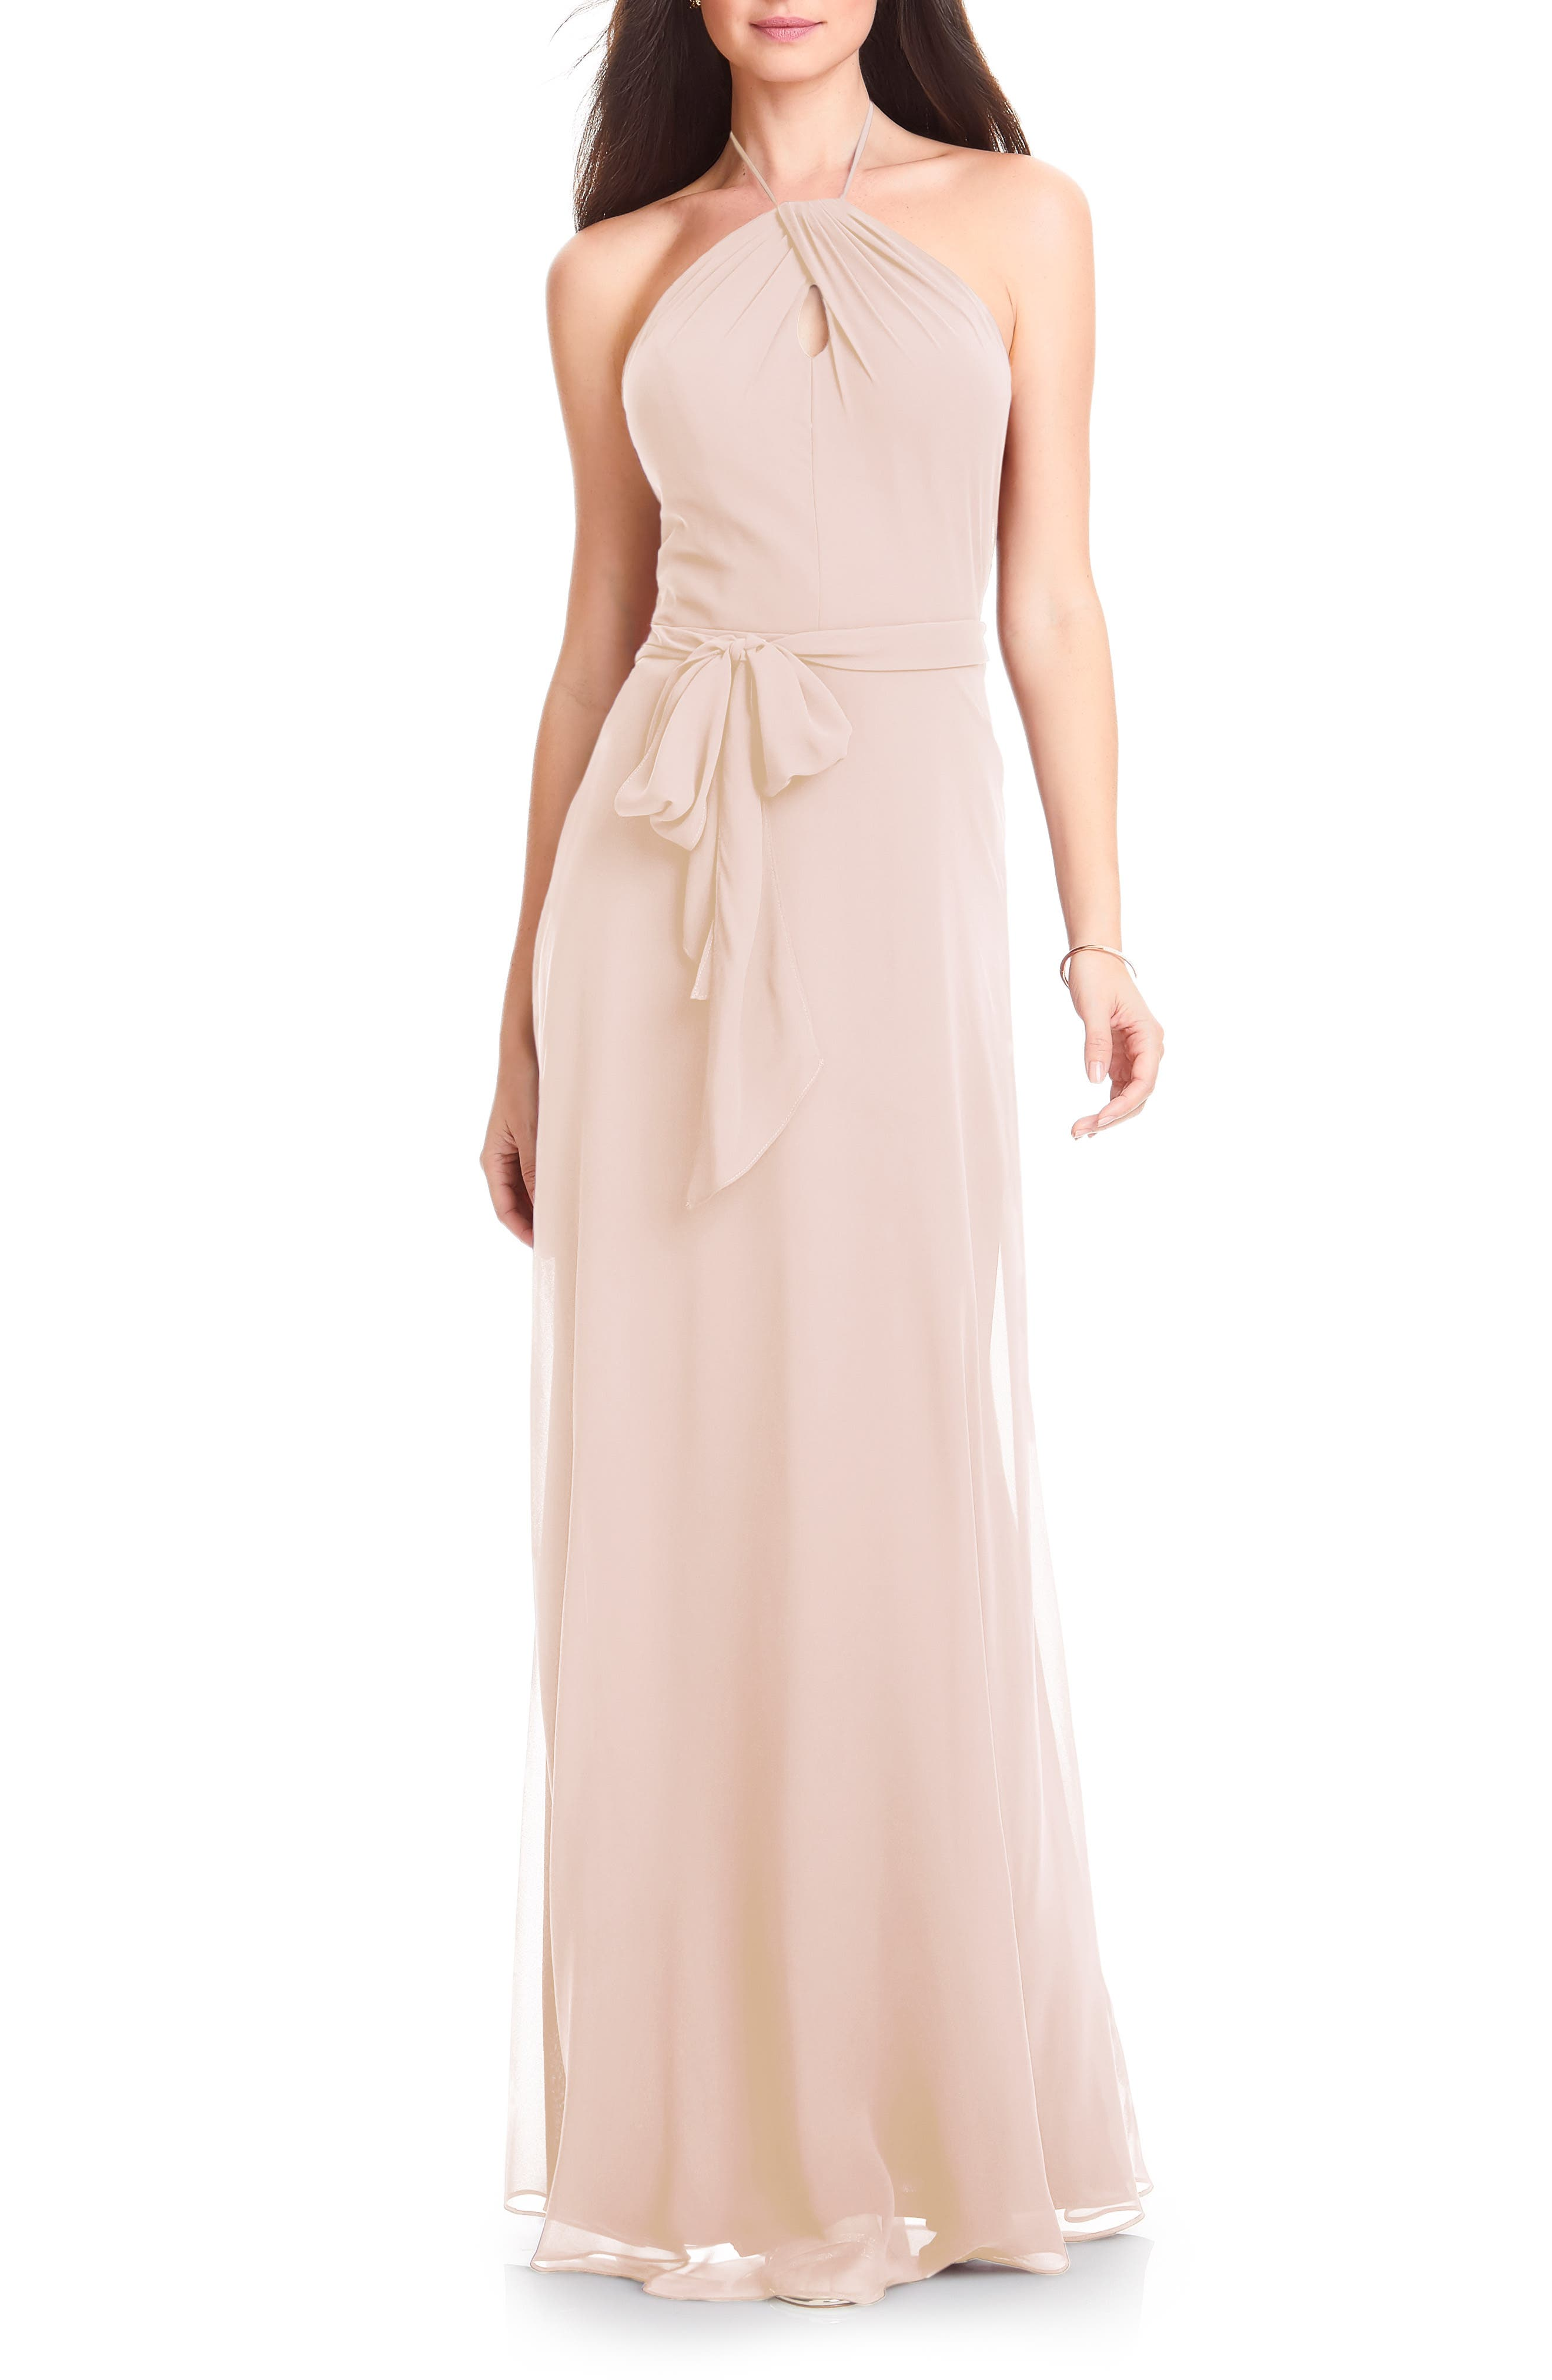 Simply romantic, with a twisted halter neck and flowing chiffon, this tie-waist gown looks effortlessly elegant-because it is. The A-line silhouette makes the dress effortlessly flattering and perfect for bridesmaids or wearing to a formal event. Style Name:#levkoff Halter Chiffon A-Line Gown. Style Number: 5697002. Available in stores.